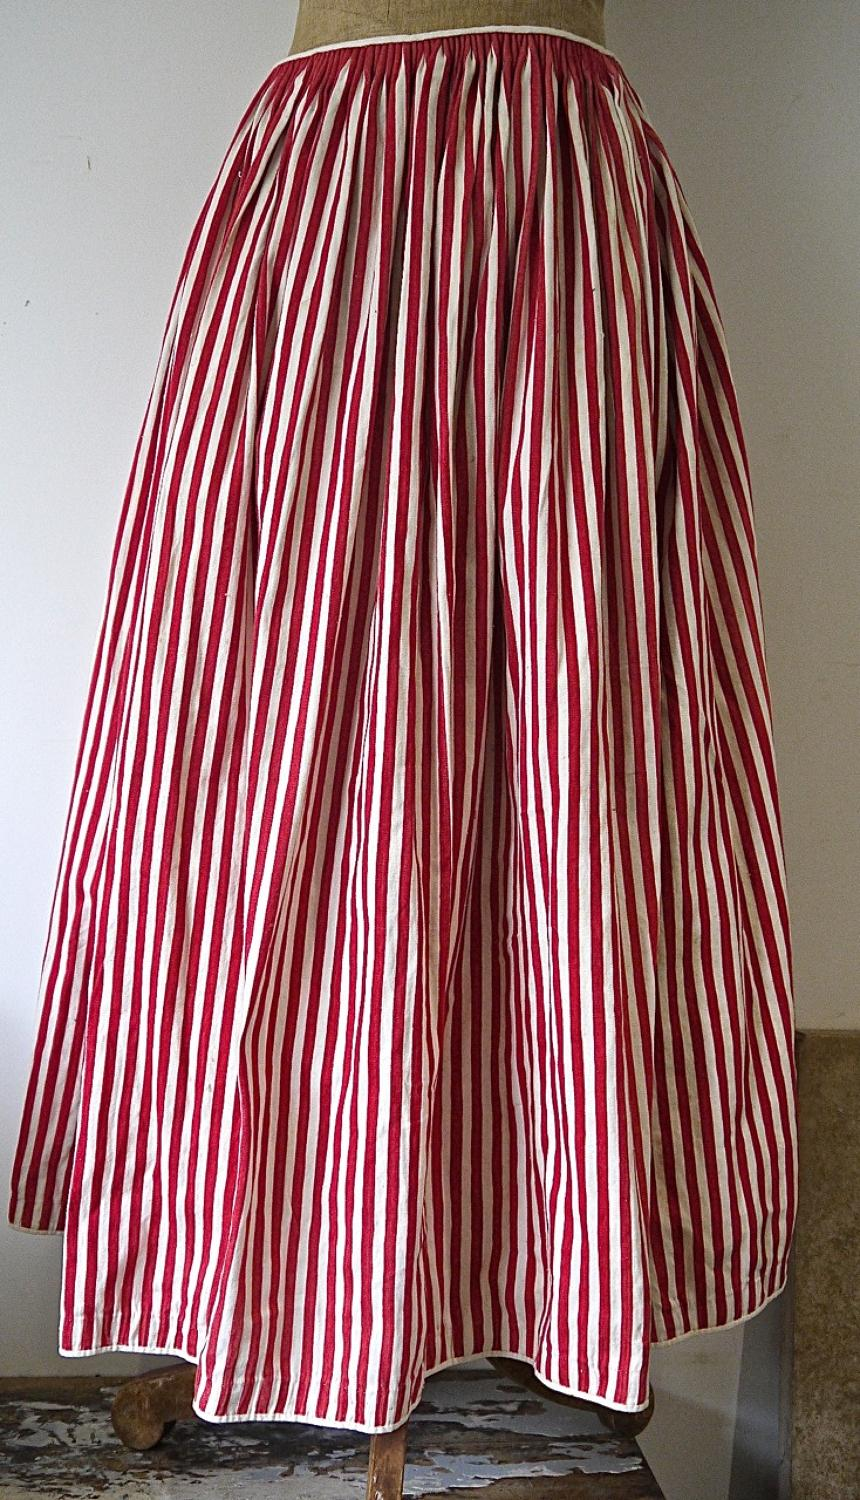 19th century French Red Striped Cotton Jupon